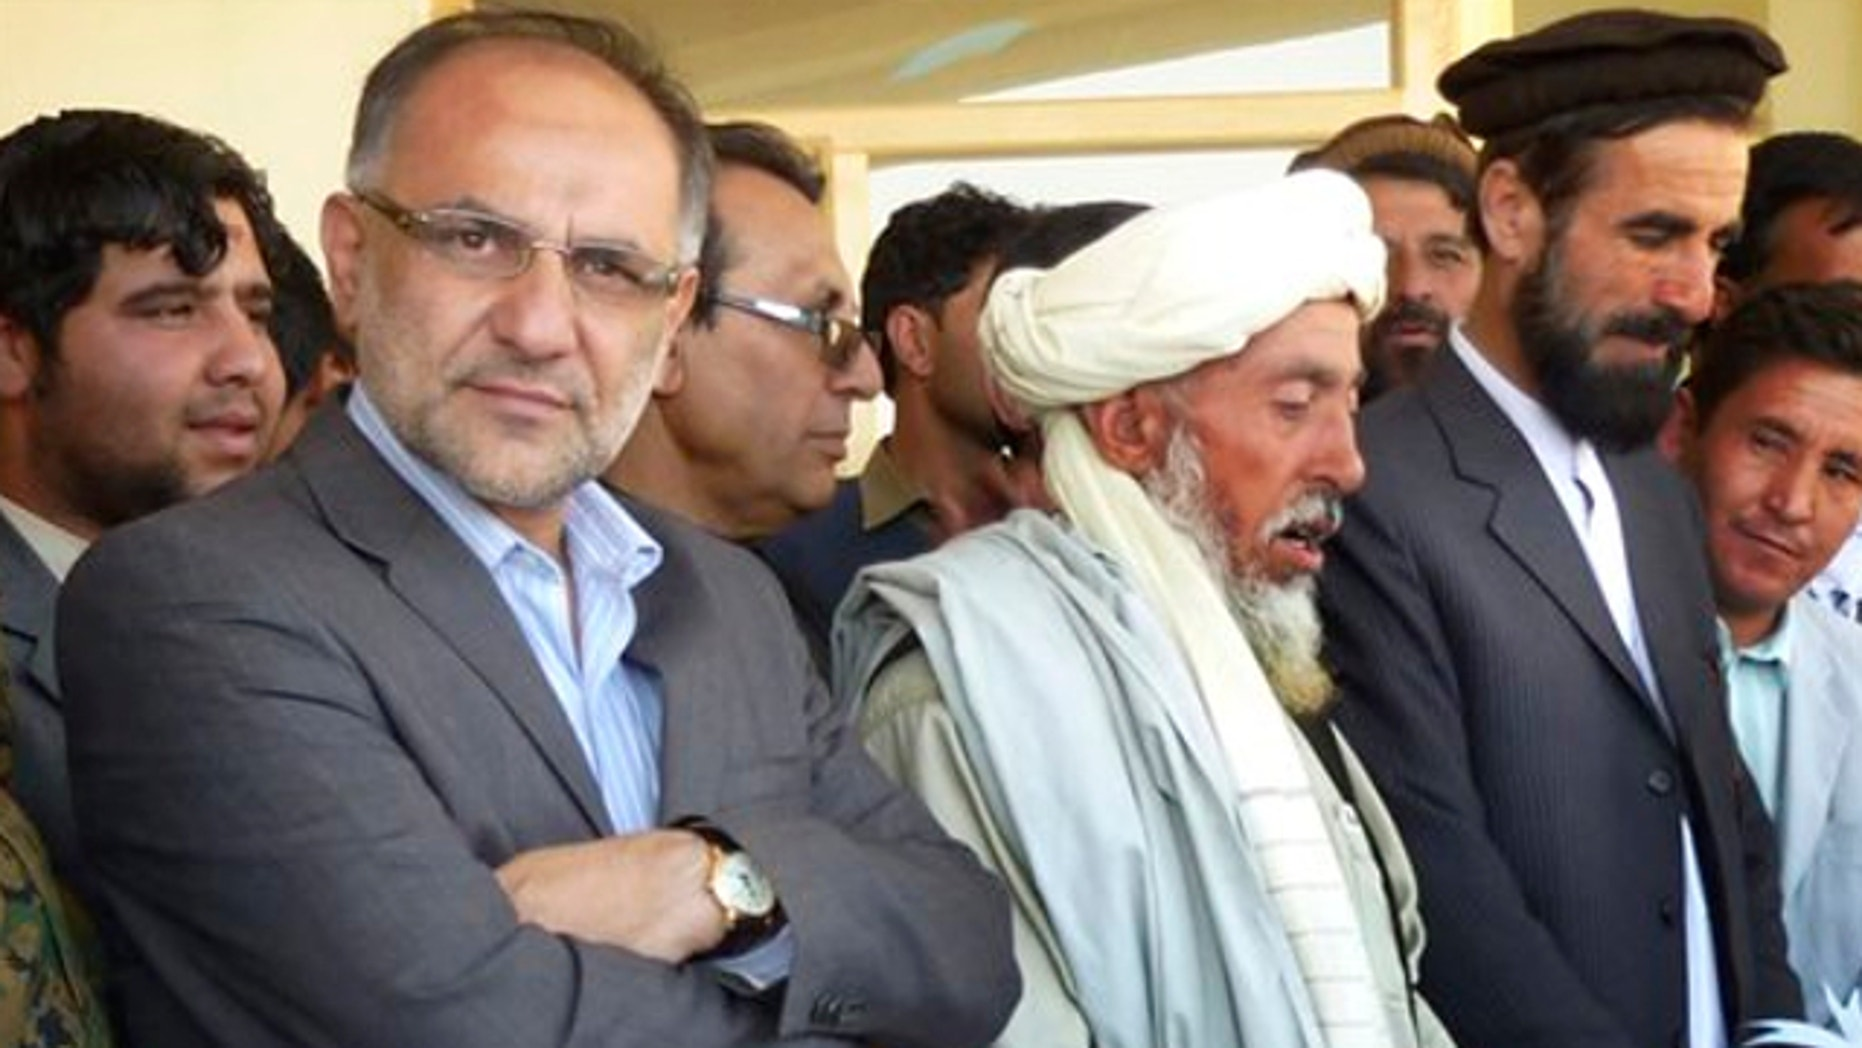 FILE: Oct. 12, 2013: Governor Arsallah Jamal, left, attends an opening ceremony of a school in Muhammad Agha, Logar province, Afghanistan. A bomb planted inside a mosque killed the governor of Afghanistan's eastern Logar province as he was delivering a speech Oct. 15.